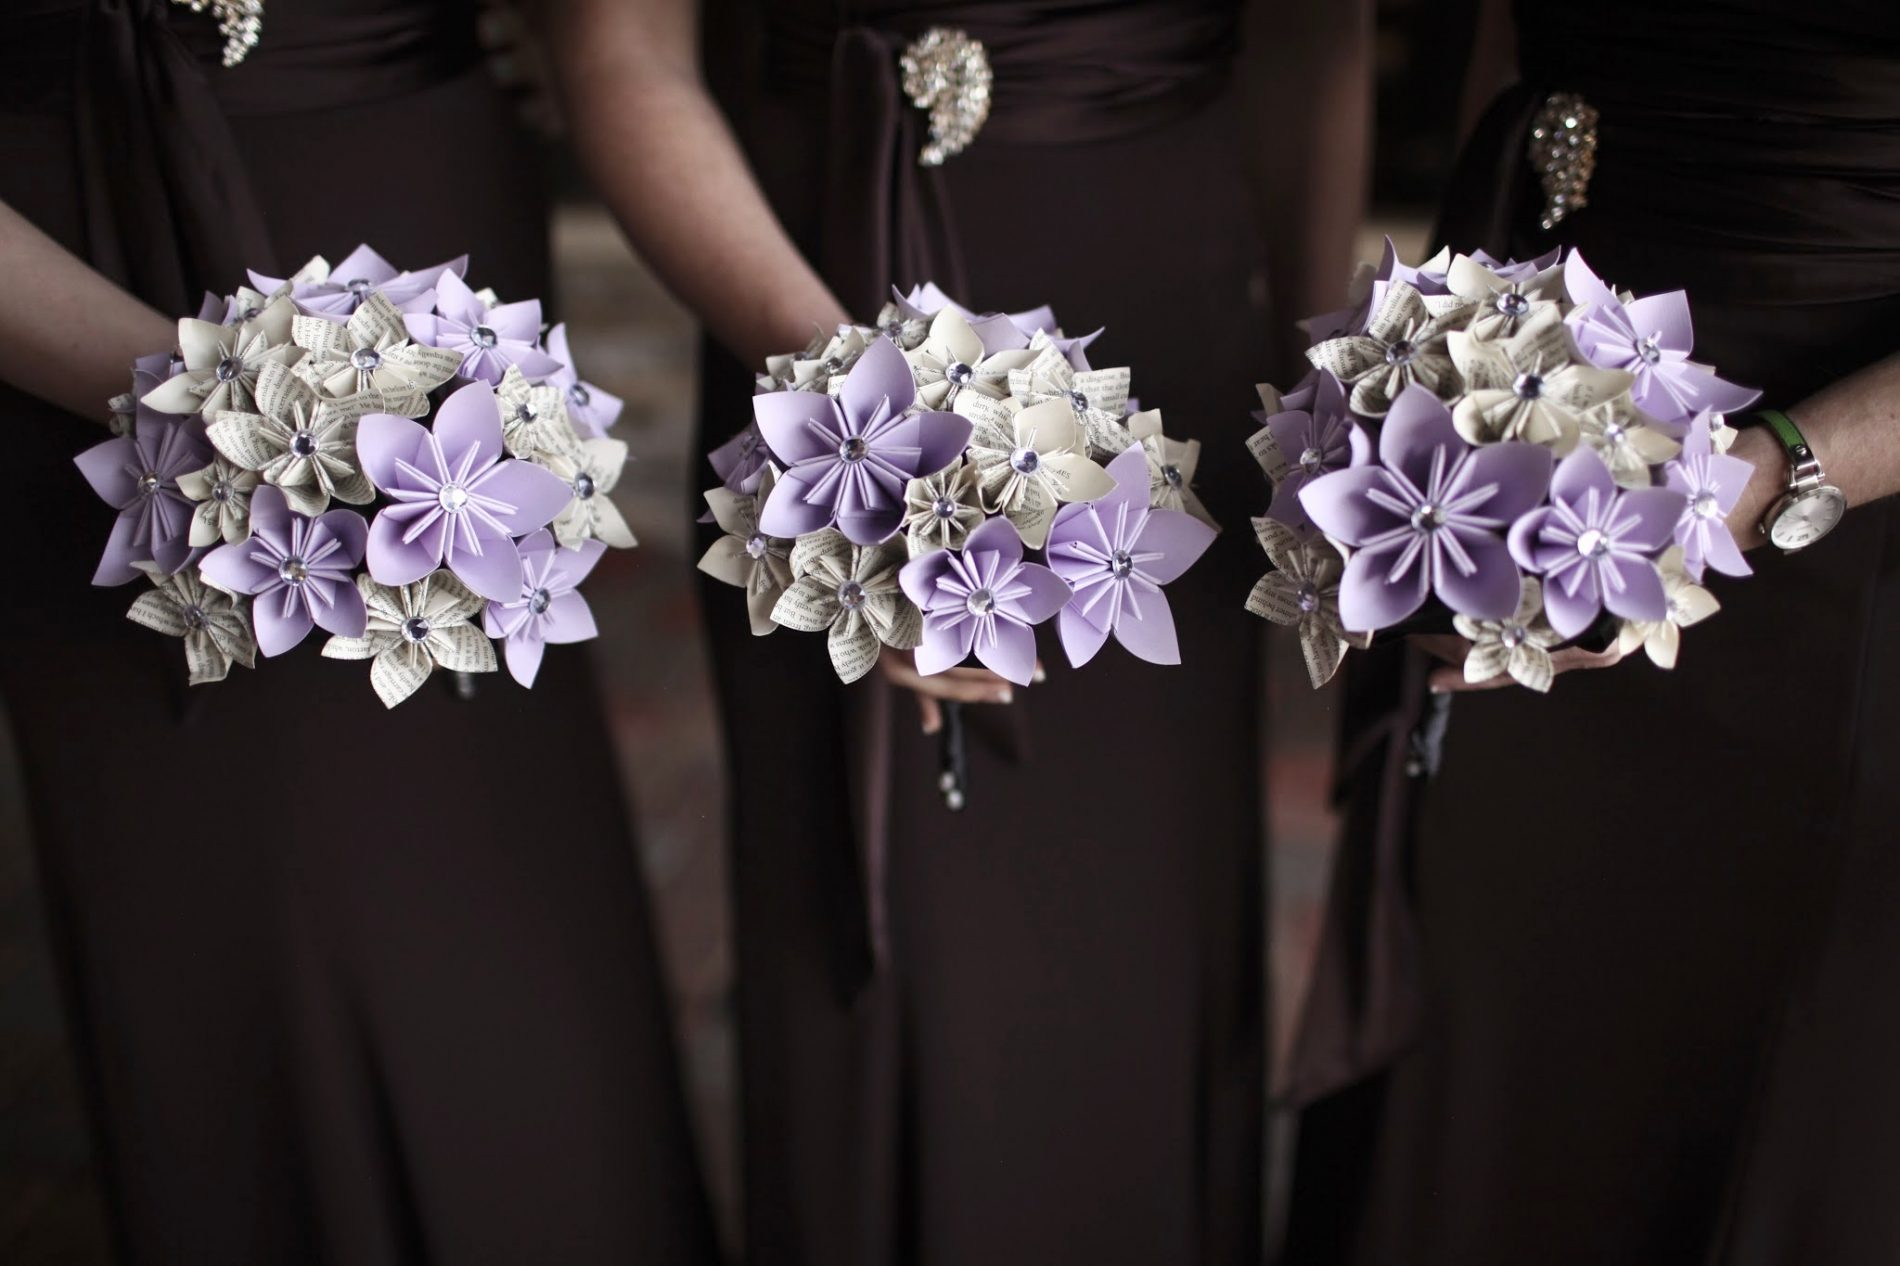 Wedding Flowers: A Calculated Reduction of Stress